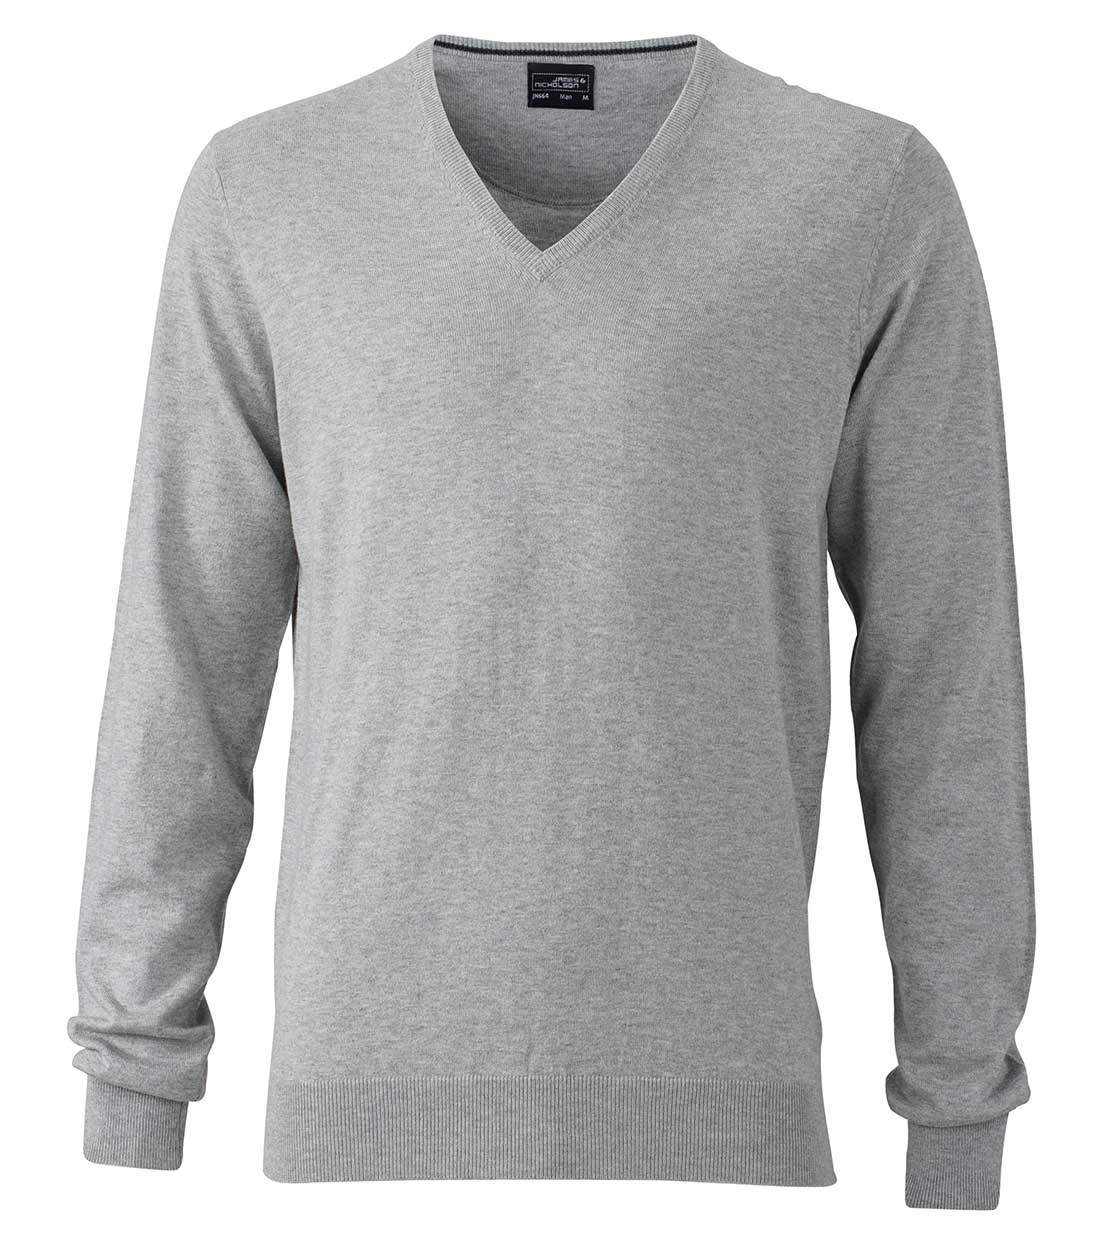 Ladies Pullover James & Nicholson JN664 - light grey melange